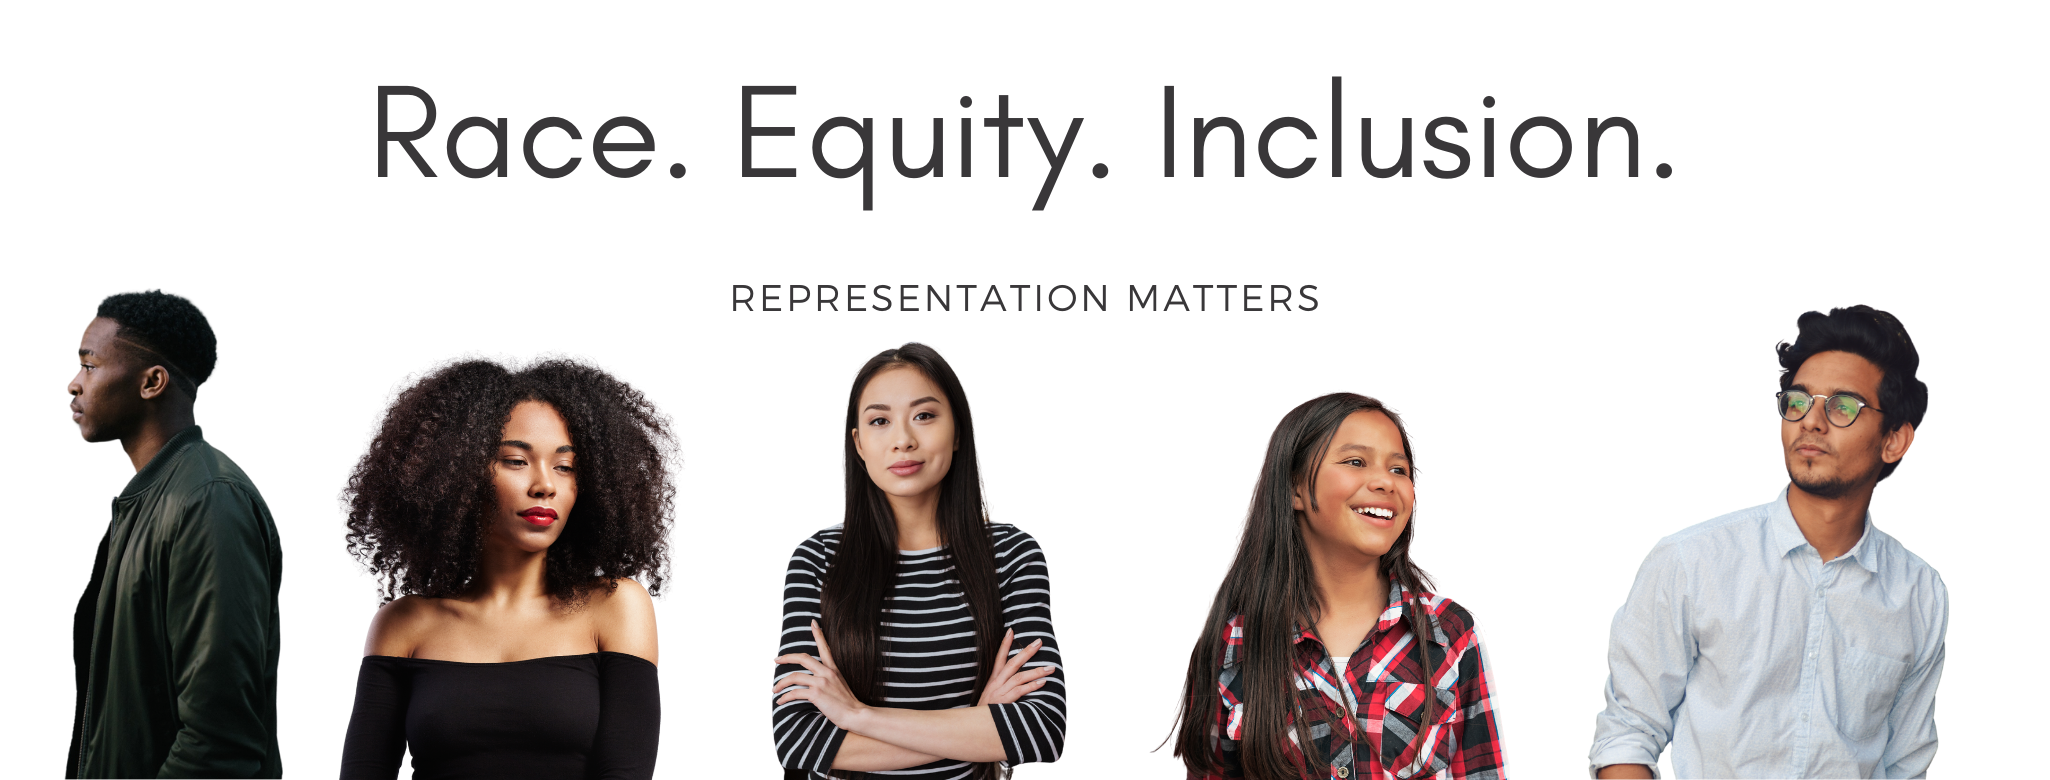 Race, Equity, and Inclusion (2)